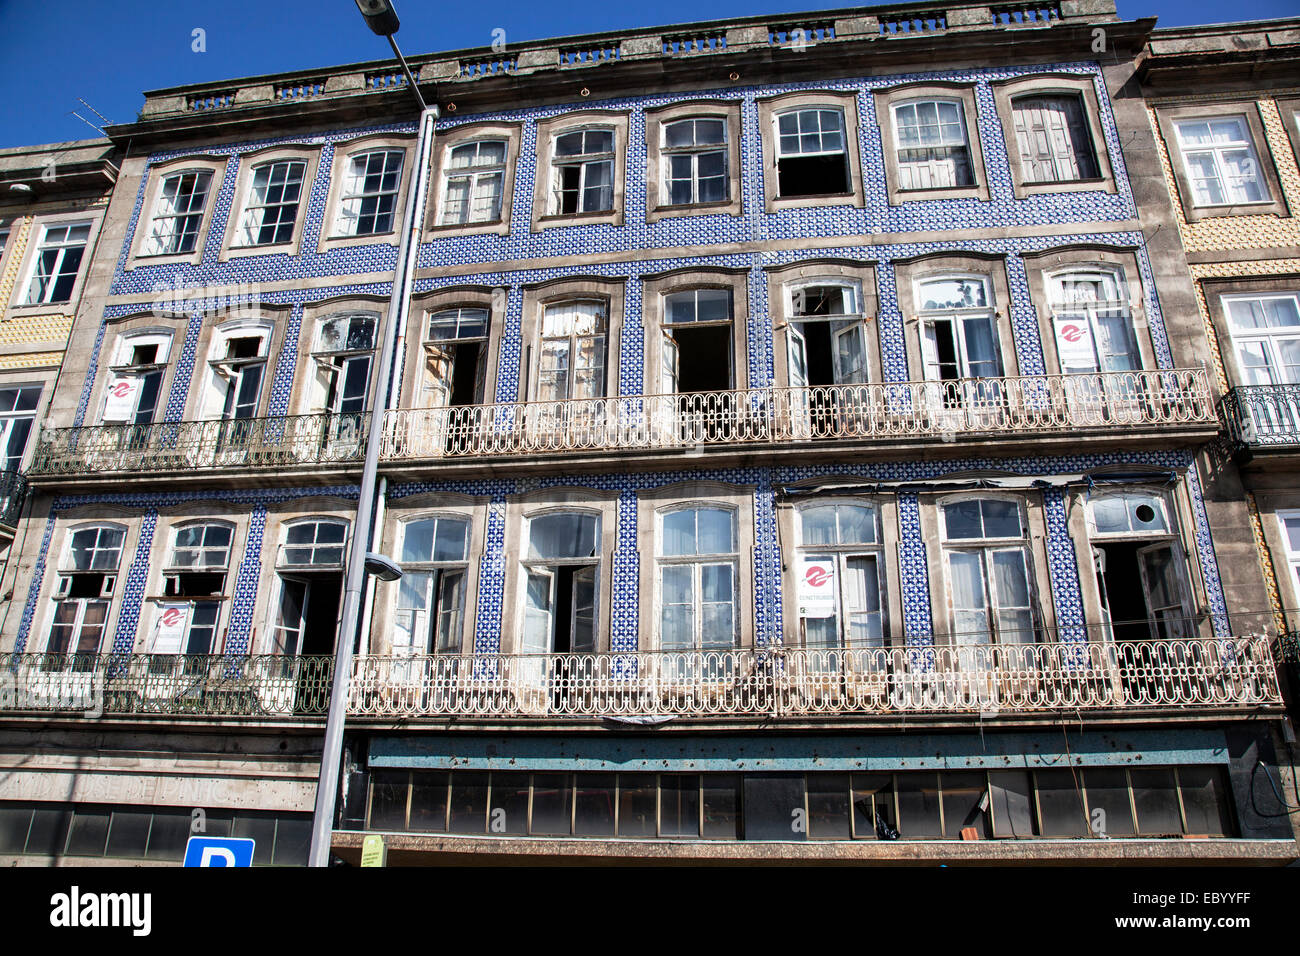 Abandon building in the centre of Porto, Portugal due to the recession. - Stock Image